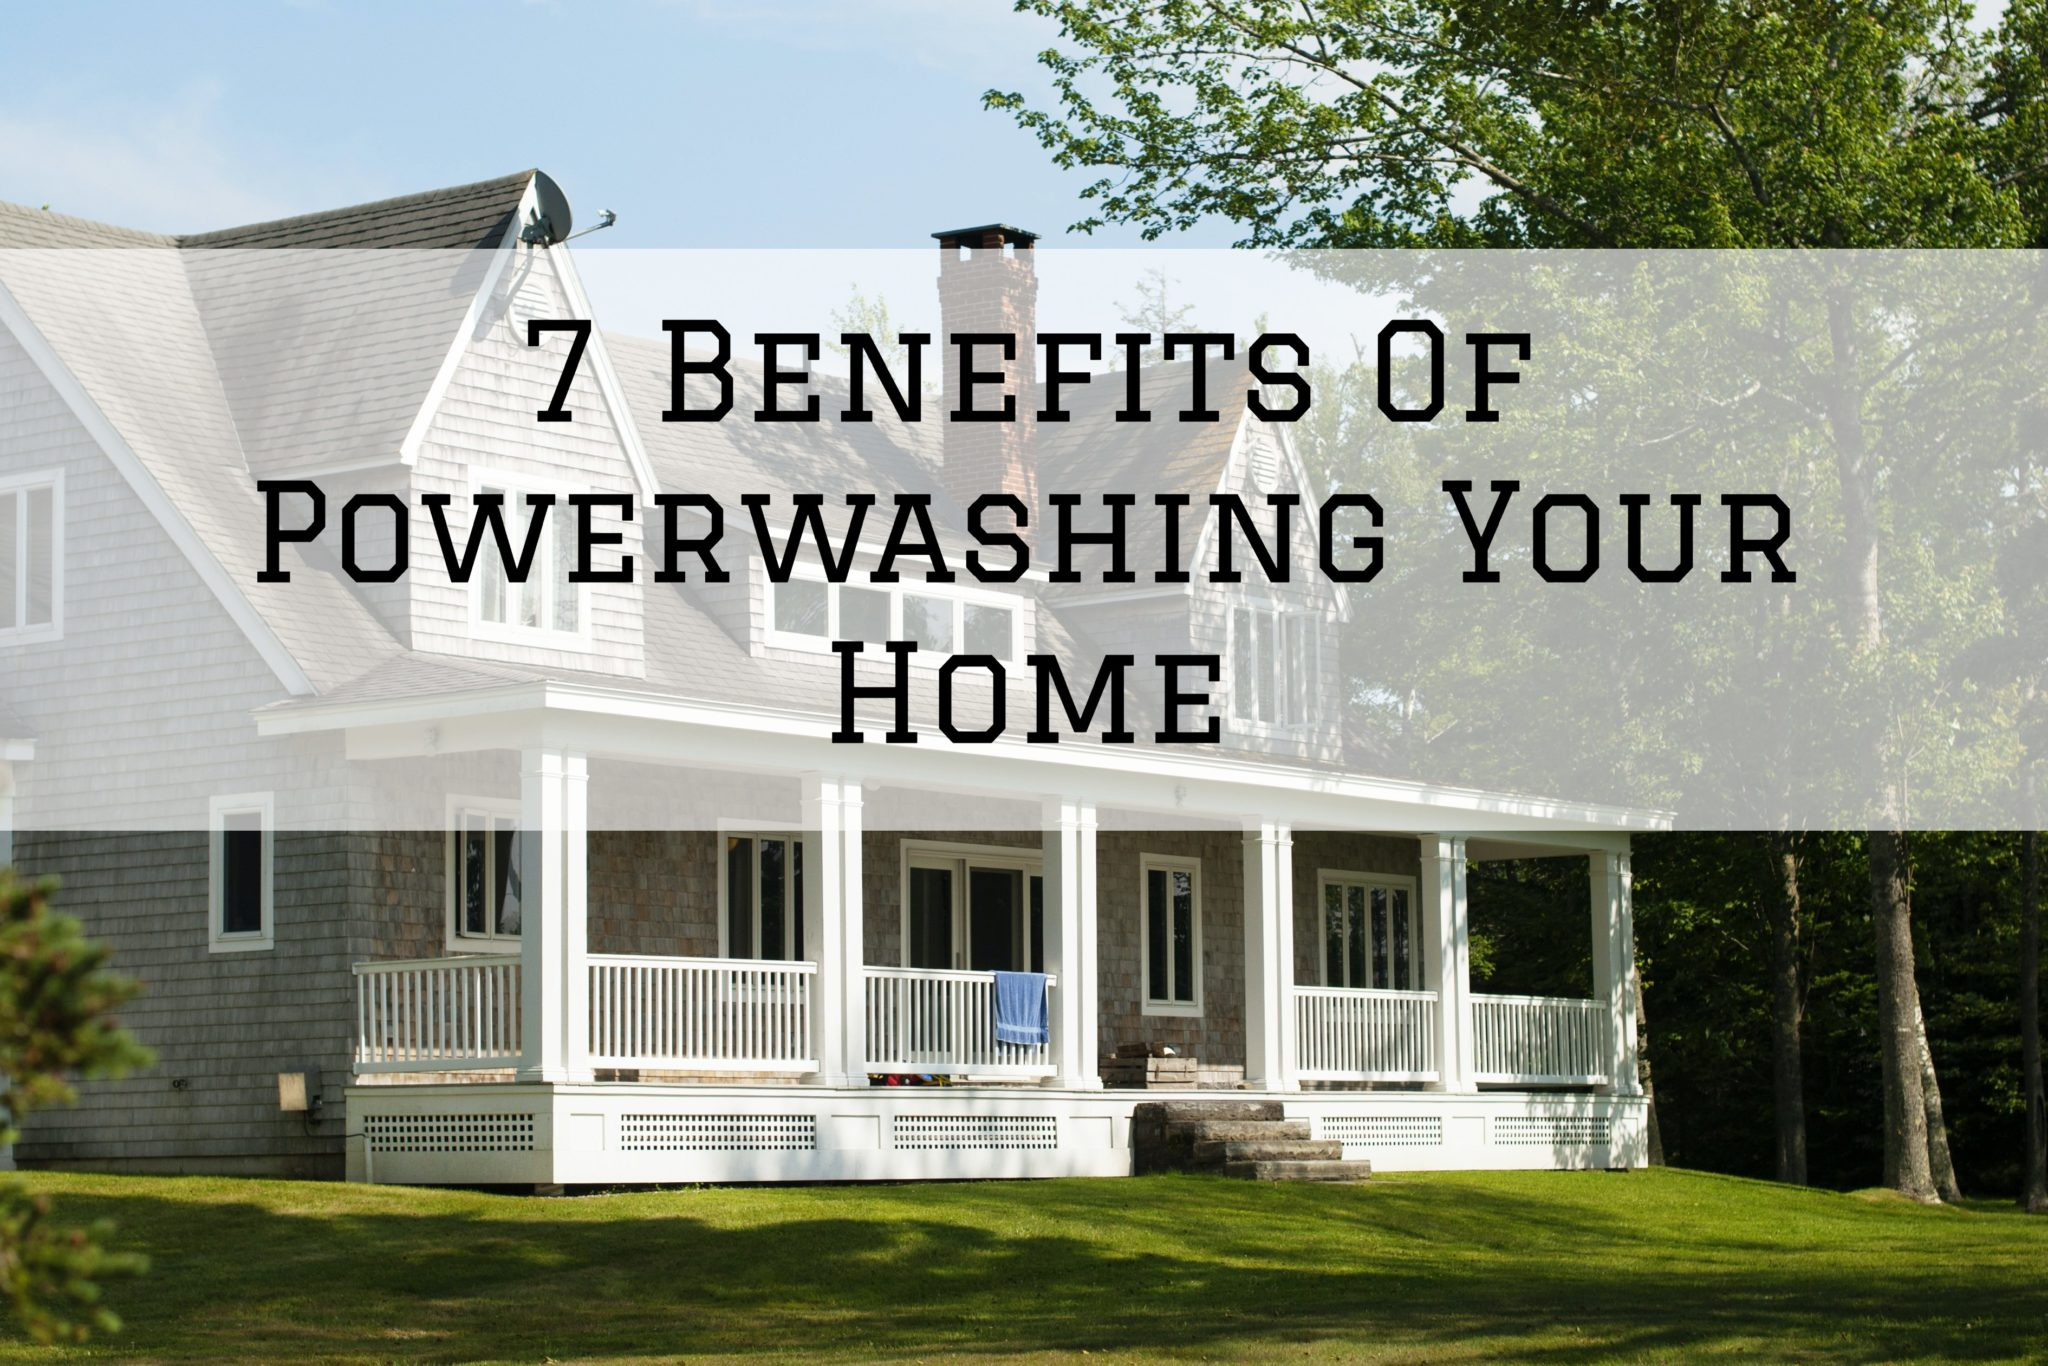 7 Benefits Of Power-washing Your Home in Omaha, NE